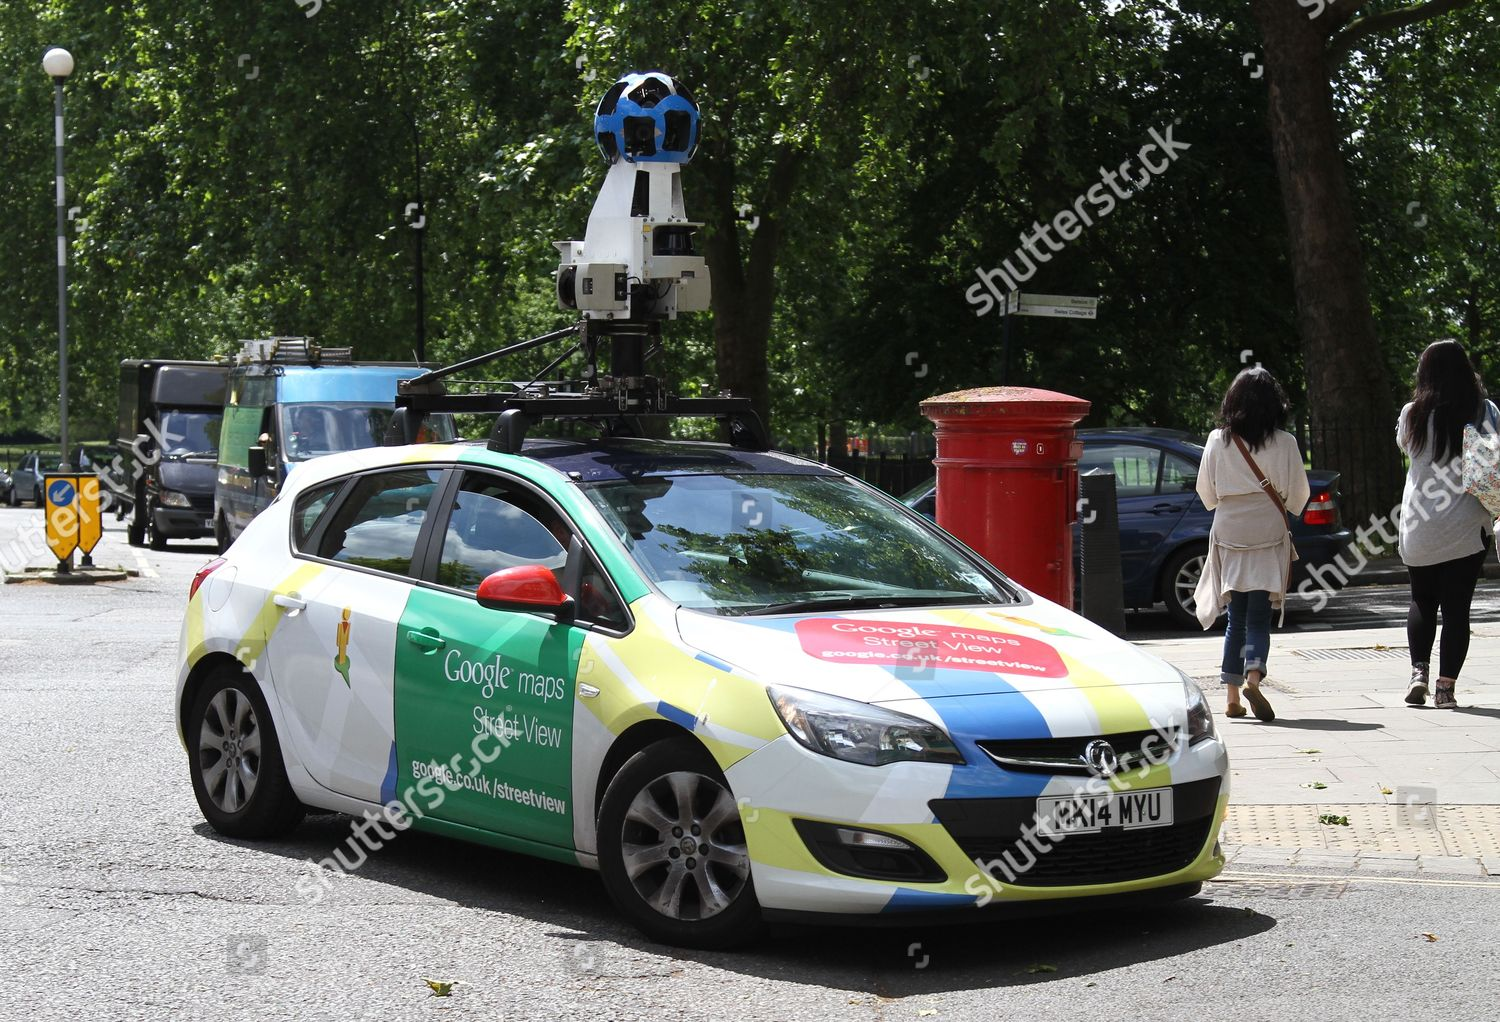 Google Earth Streetview Camera Car Driving Through Editorial Stock